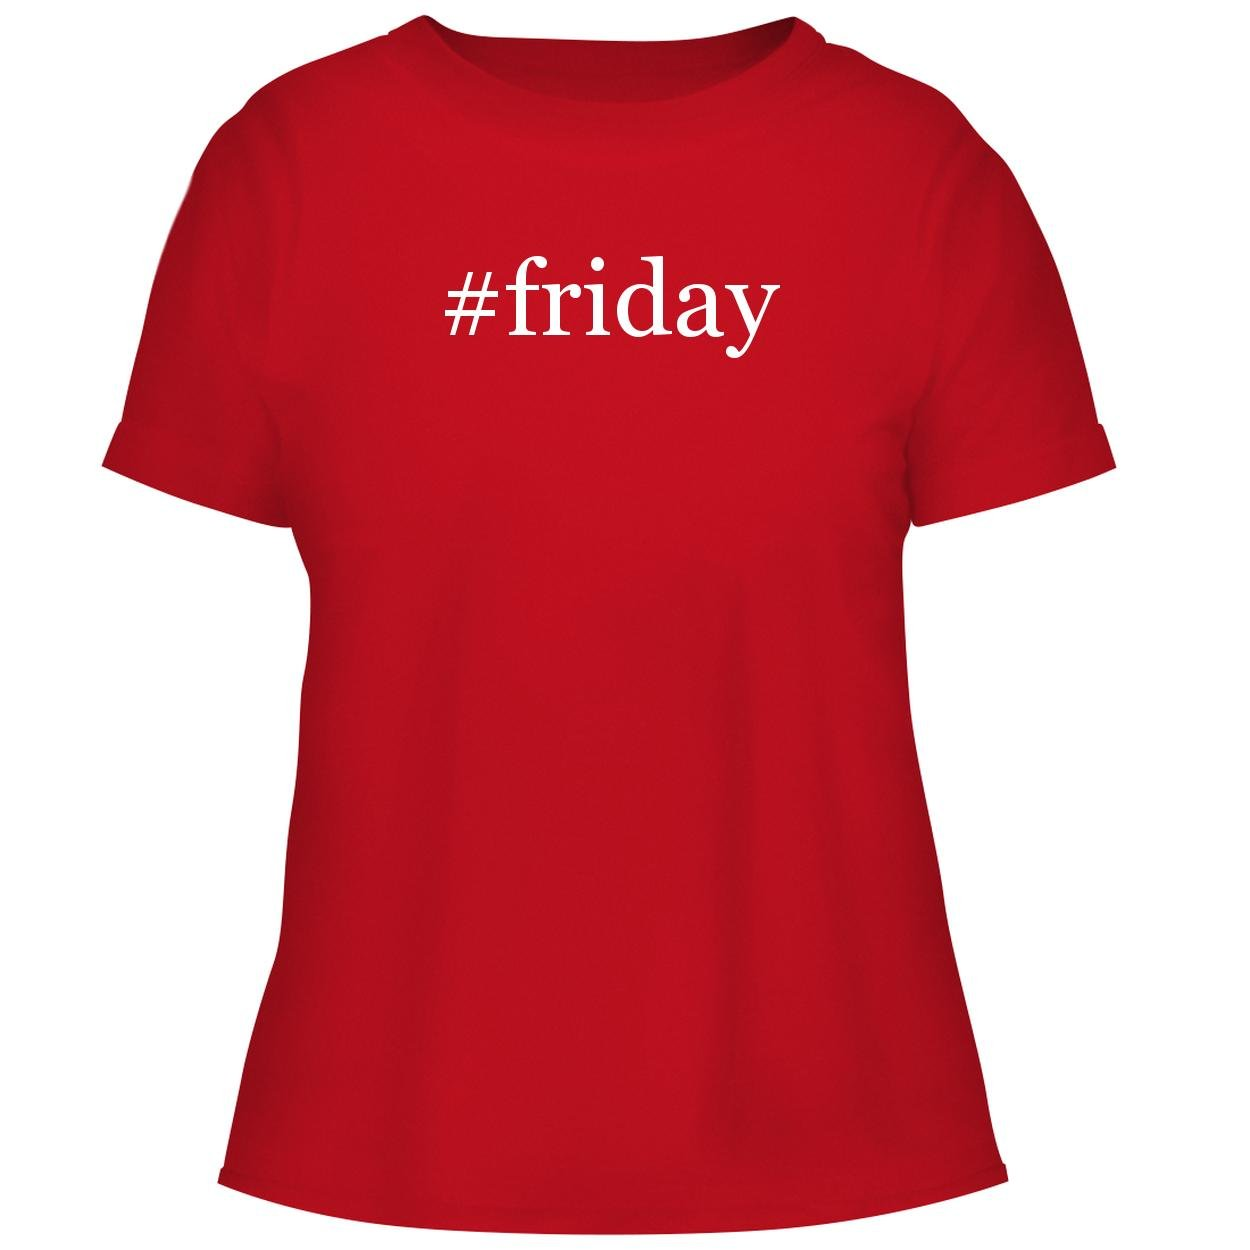 Friday Cute Graphic Tee 6095 Shirts